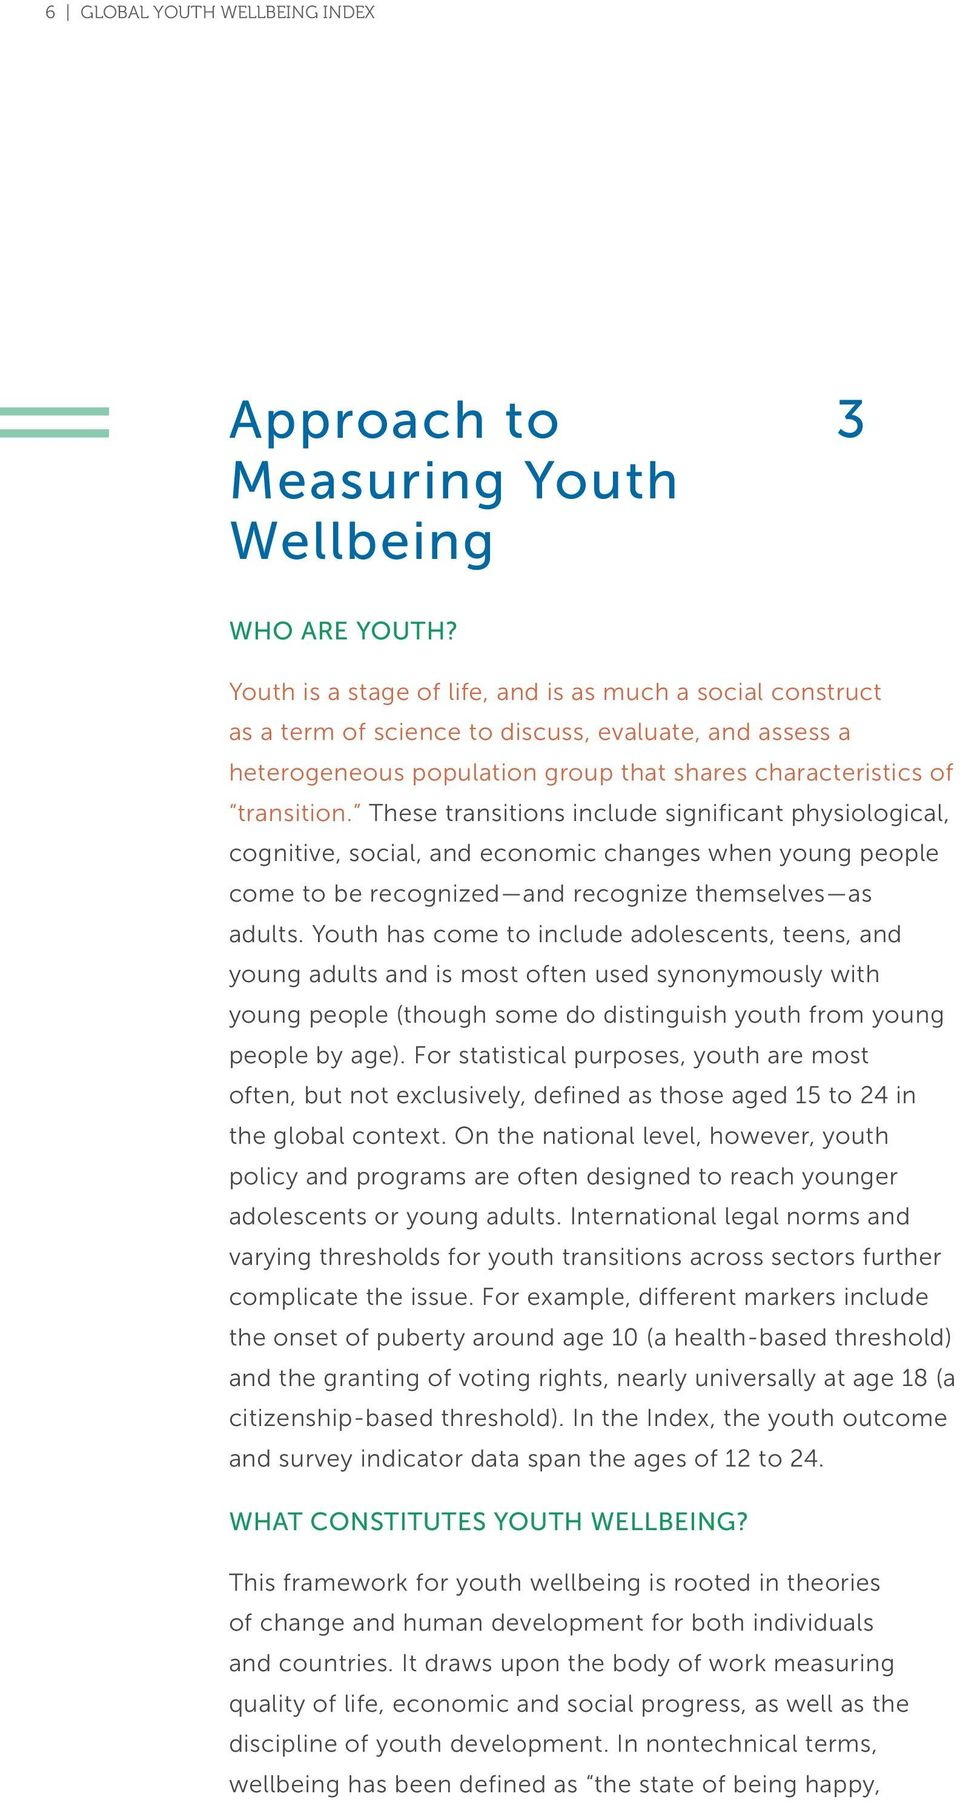 These transitions include significant physiological, cognitive, social, and economic changes when young people come to be recognized and recognize themselves as adults.